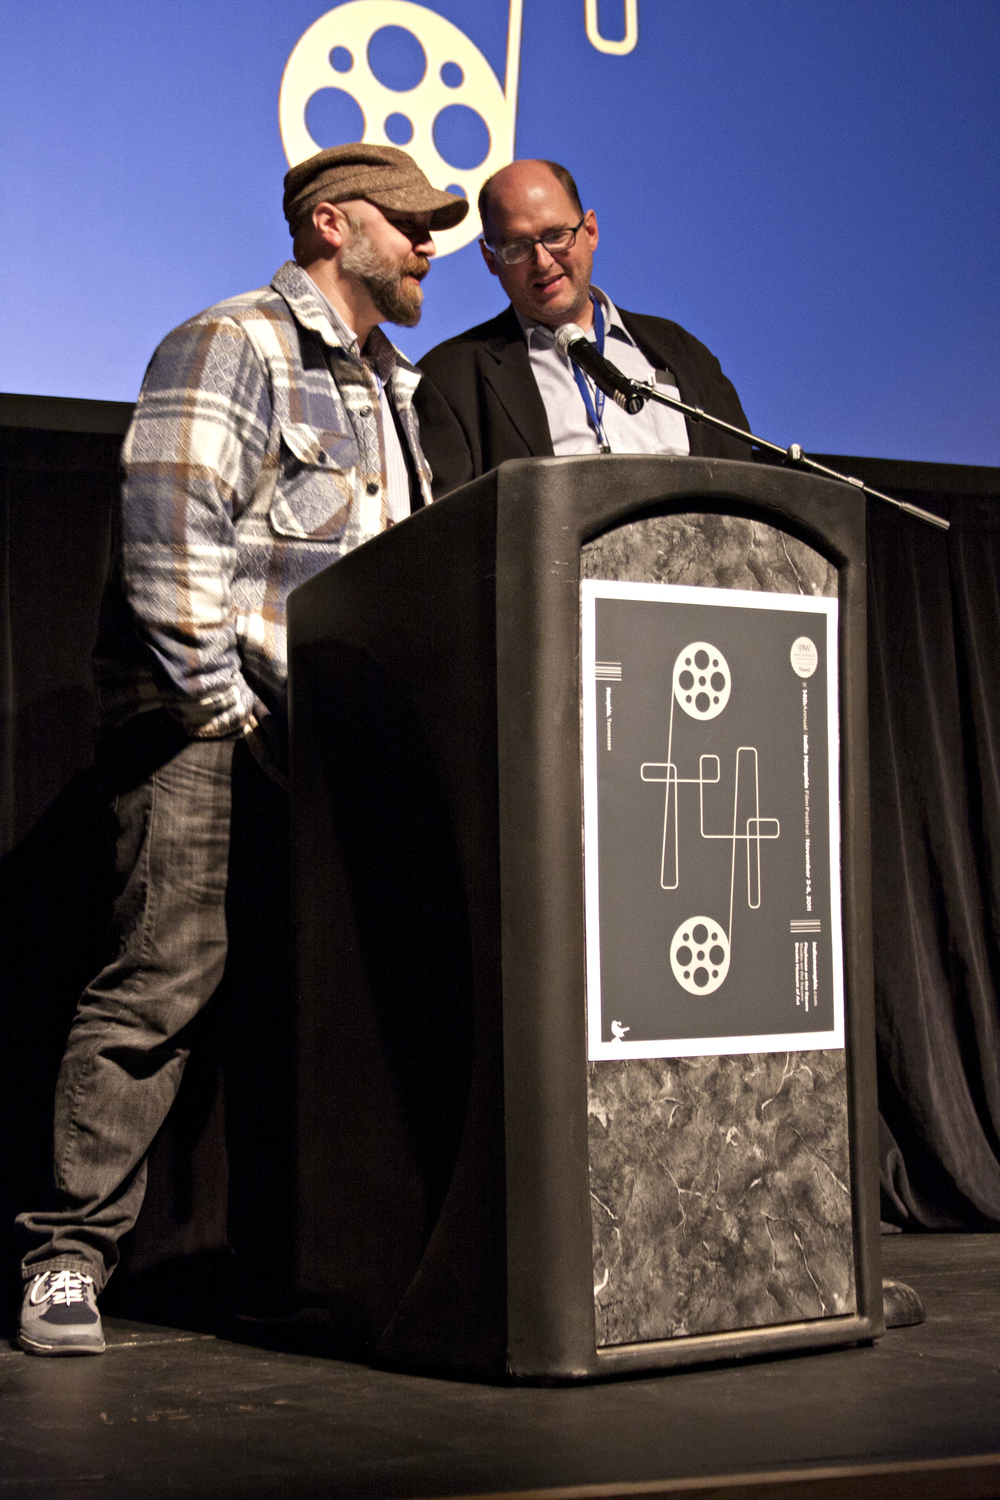 Jurors Craig Brewer and Daniel Waters at the 2011 Indie Memphis award show. Photo by Michael Norris.